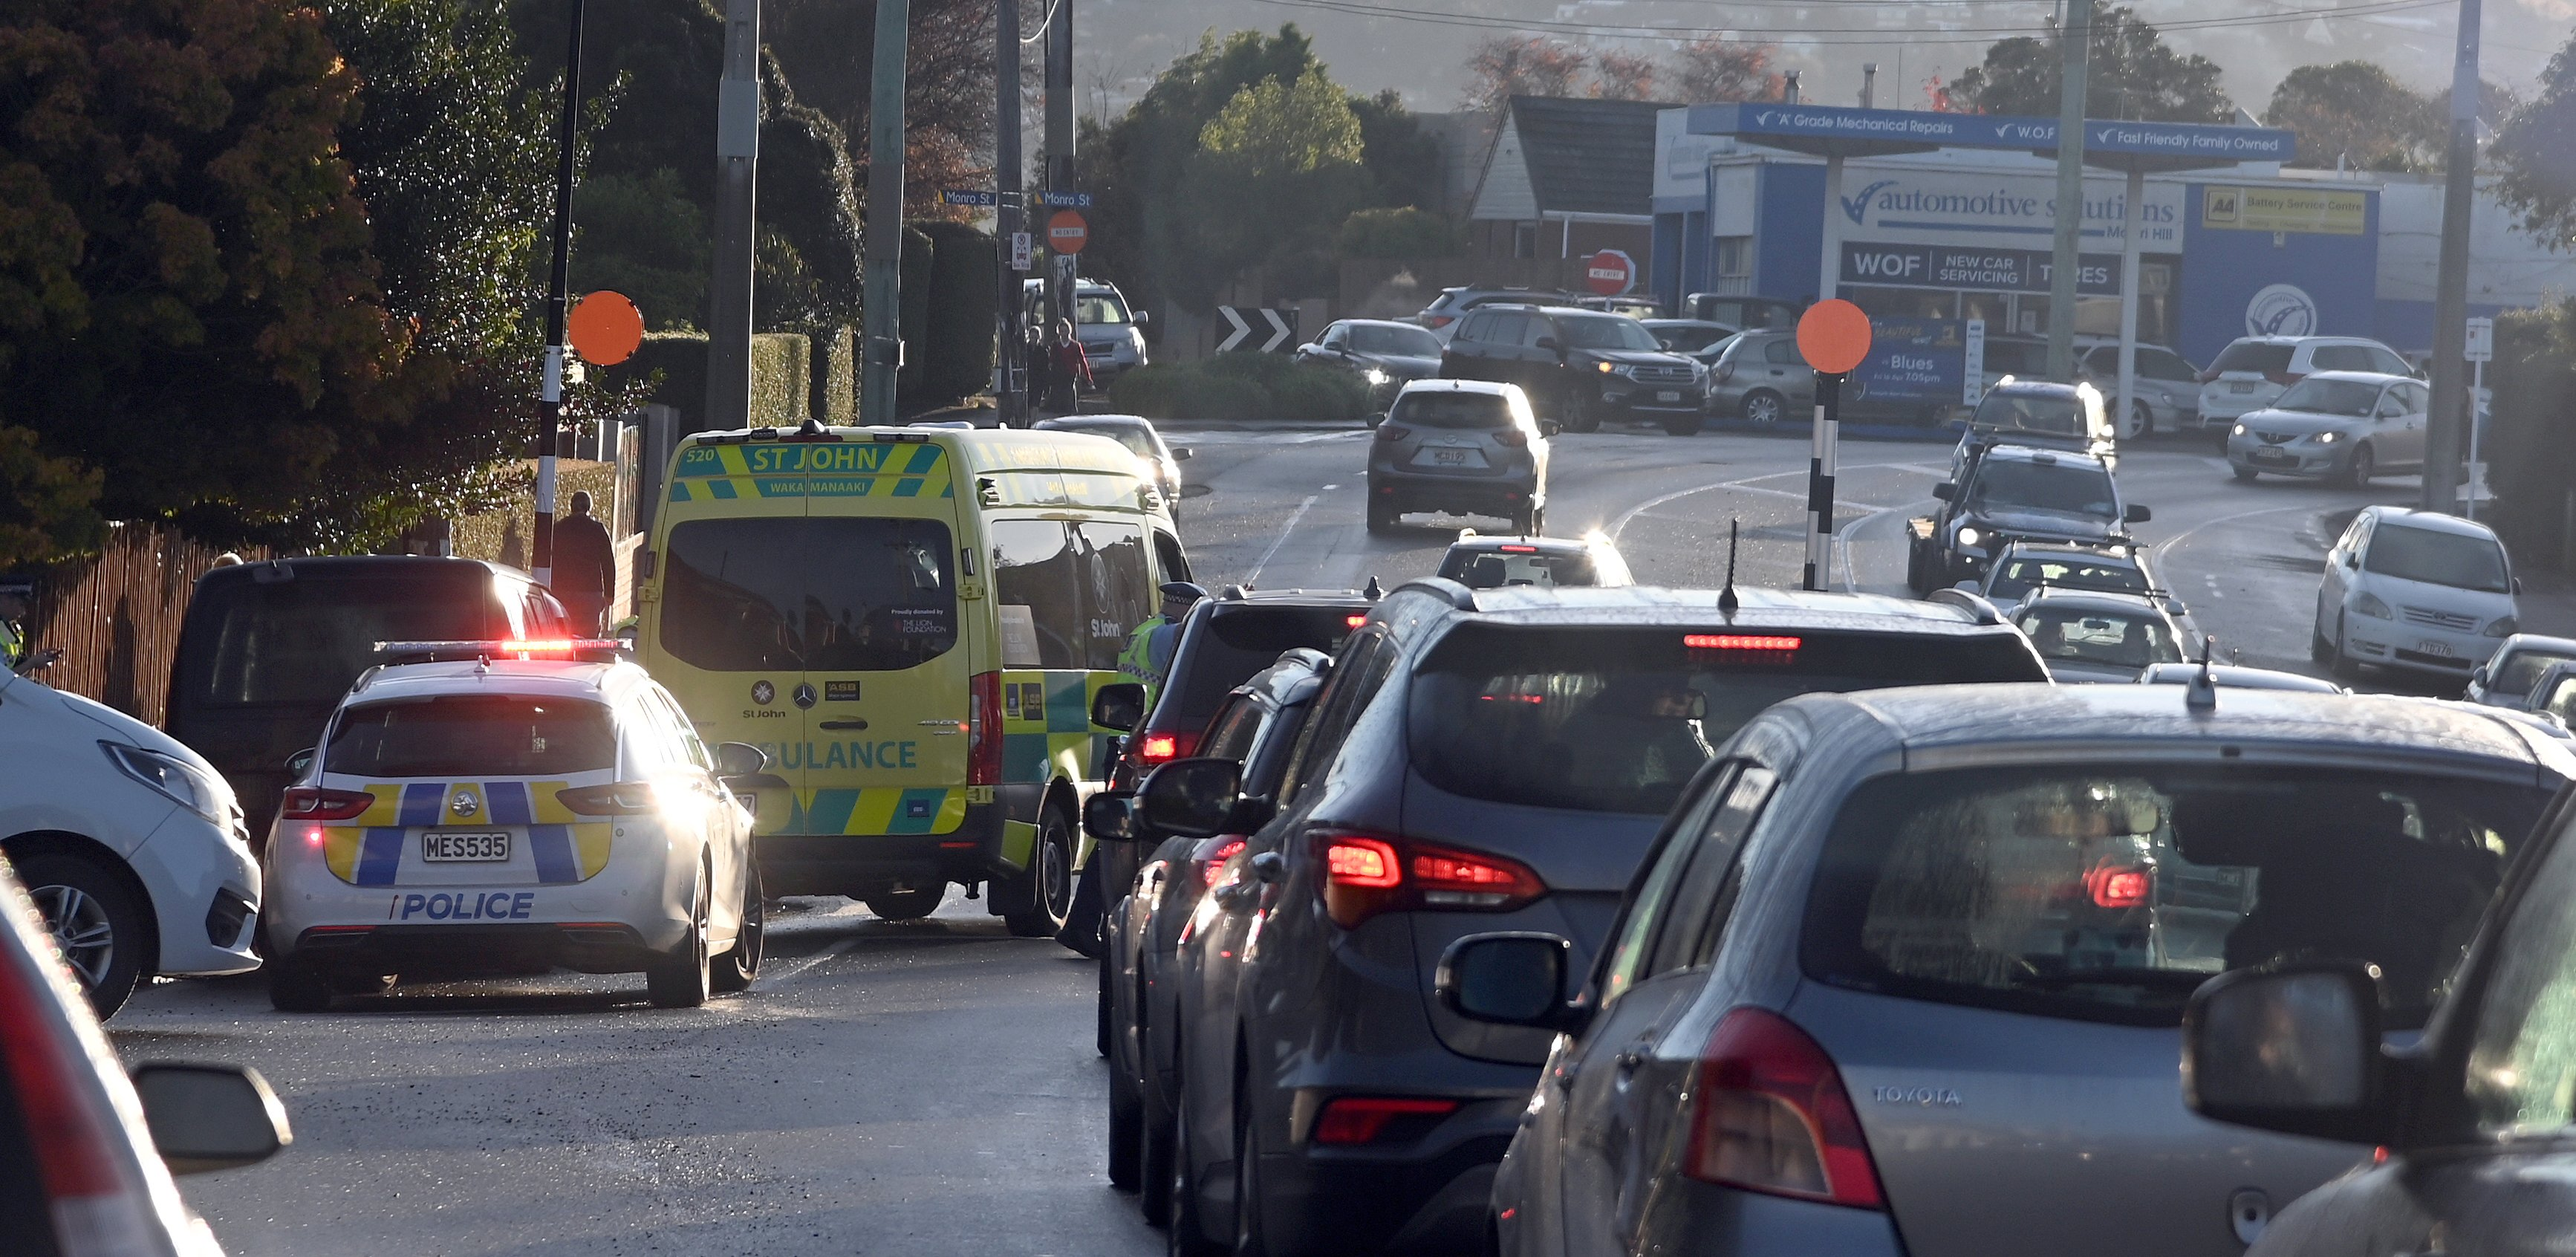 Cars are backed up following the accident this morning. Photo: Craig Baxter